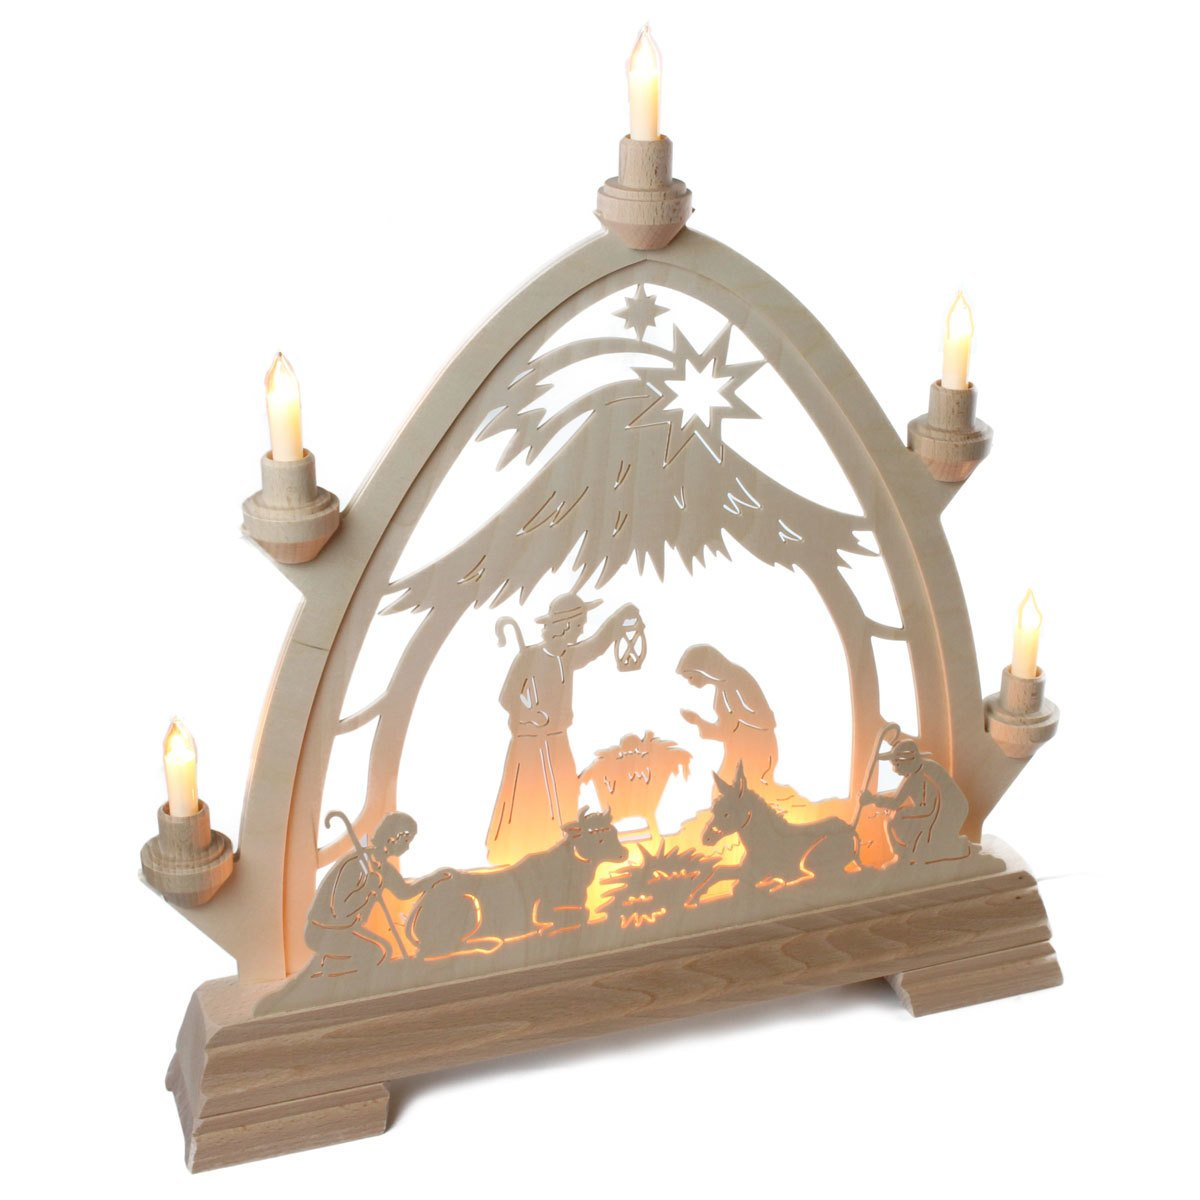 Dregano Christmas Nativity Schwibbogen Arch Made in Germany